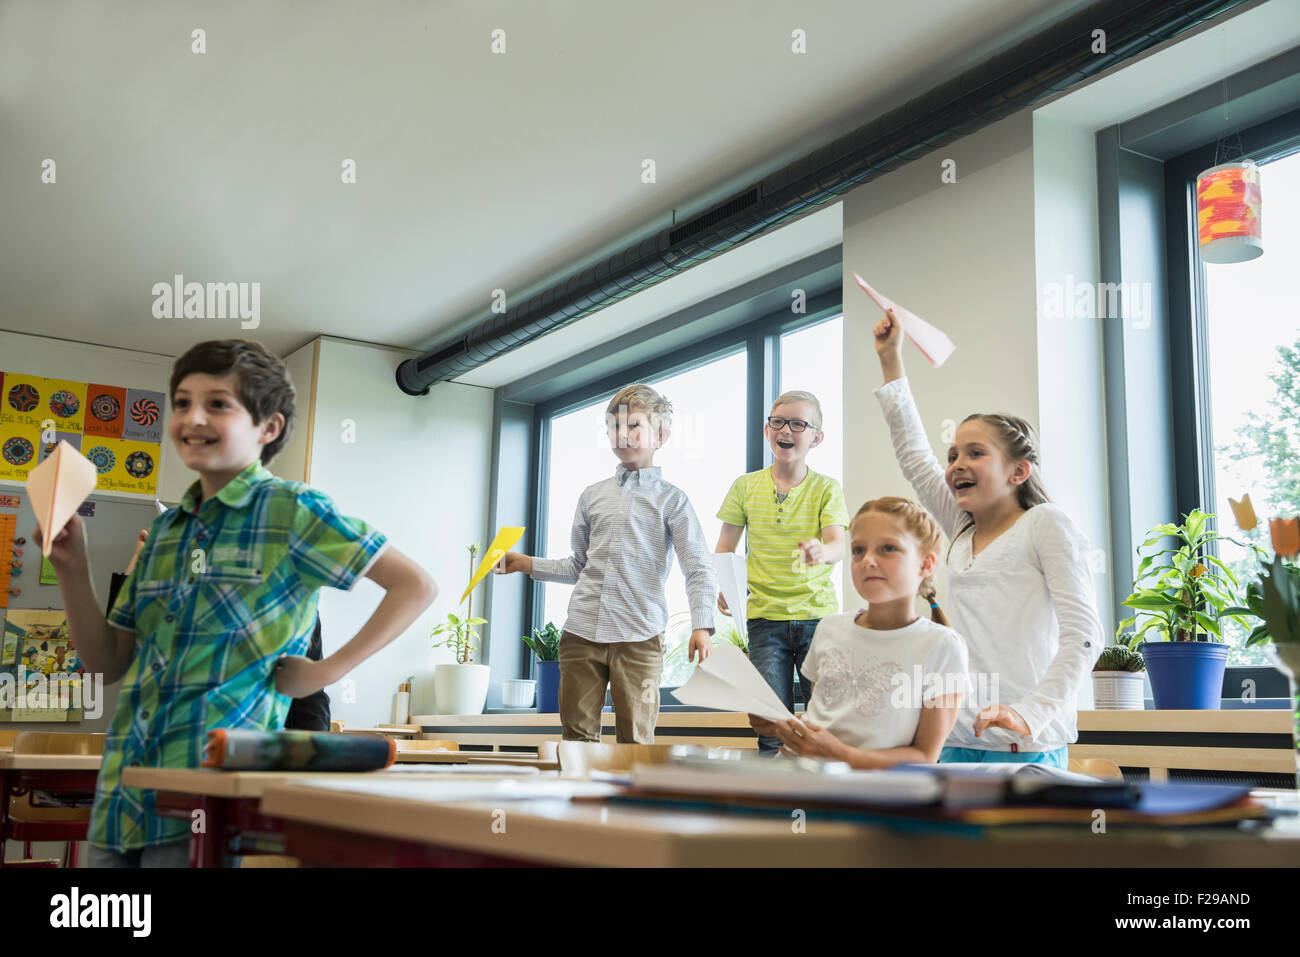 School children playing with paper airplanes in classroom, Munich, Bavaria, Germany Stock Photo